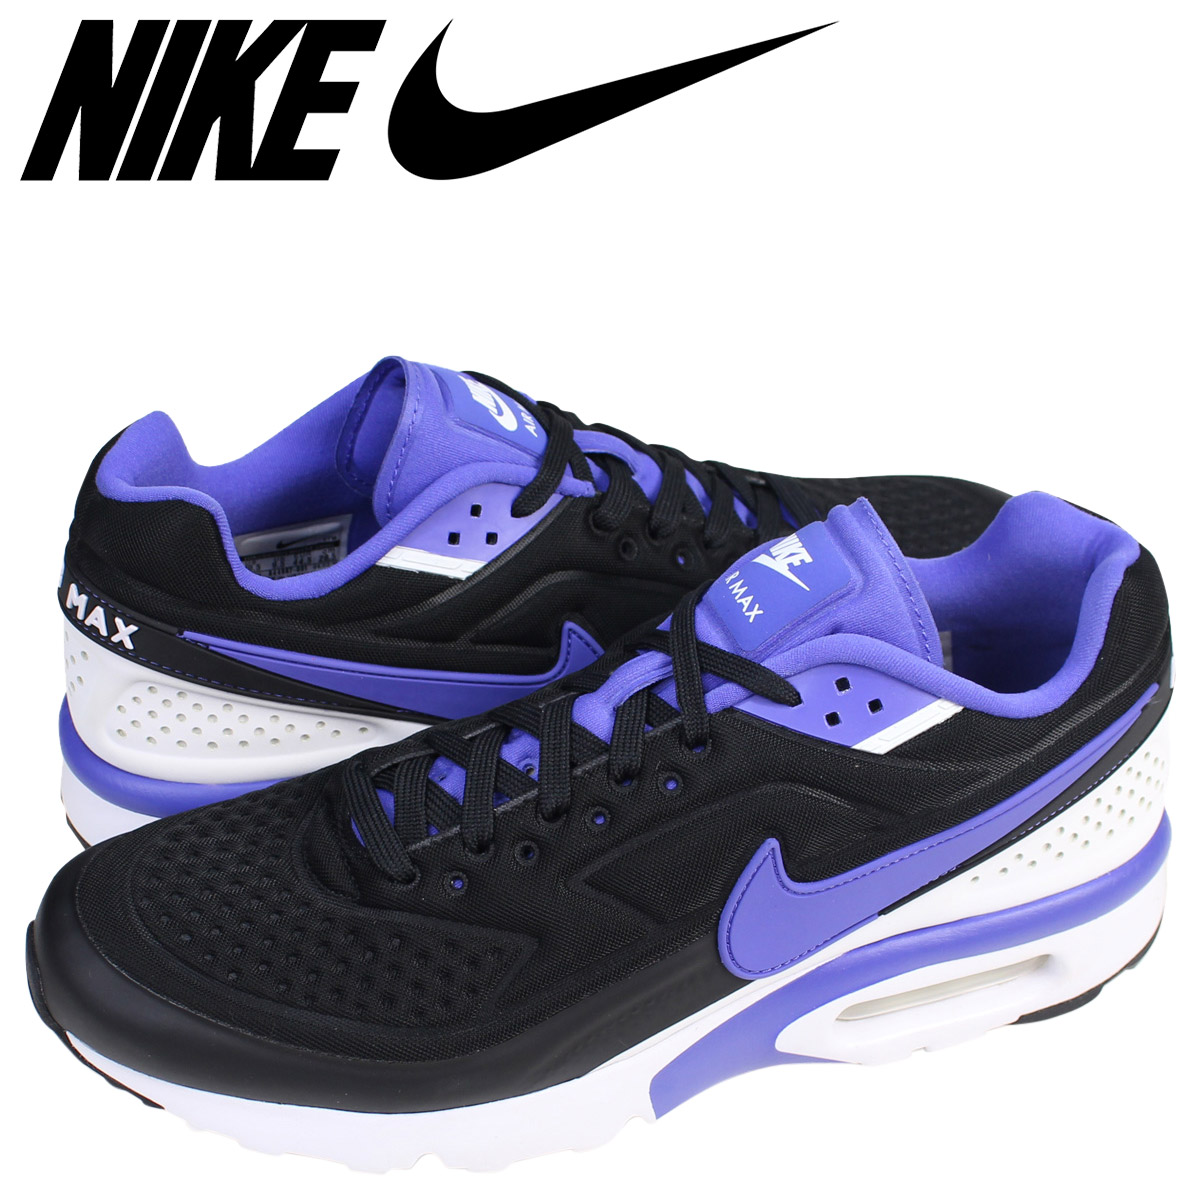 ShopNike Bw Se Sugar Air Online Max Sneakers Ultra dCxhtsQr